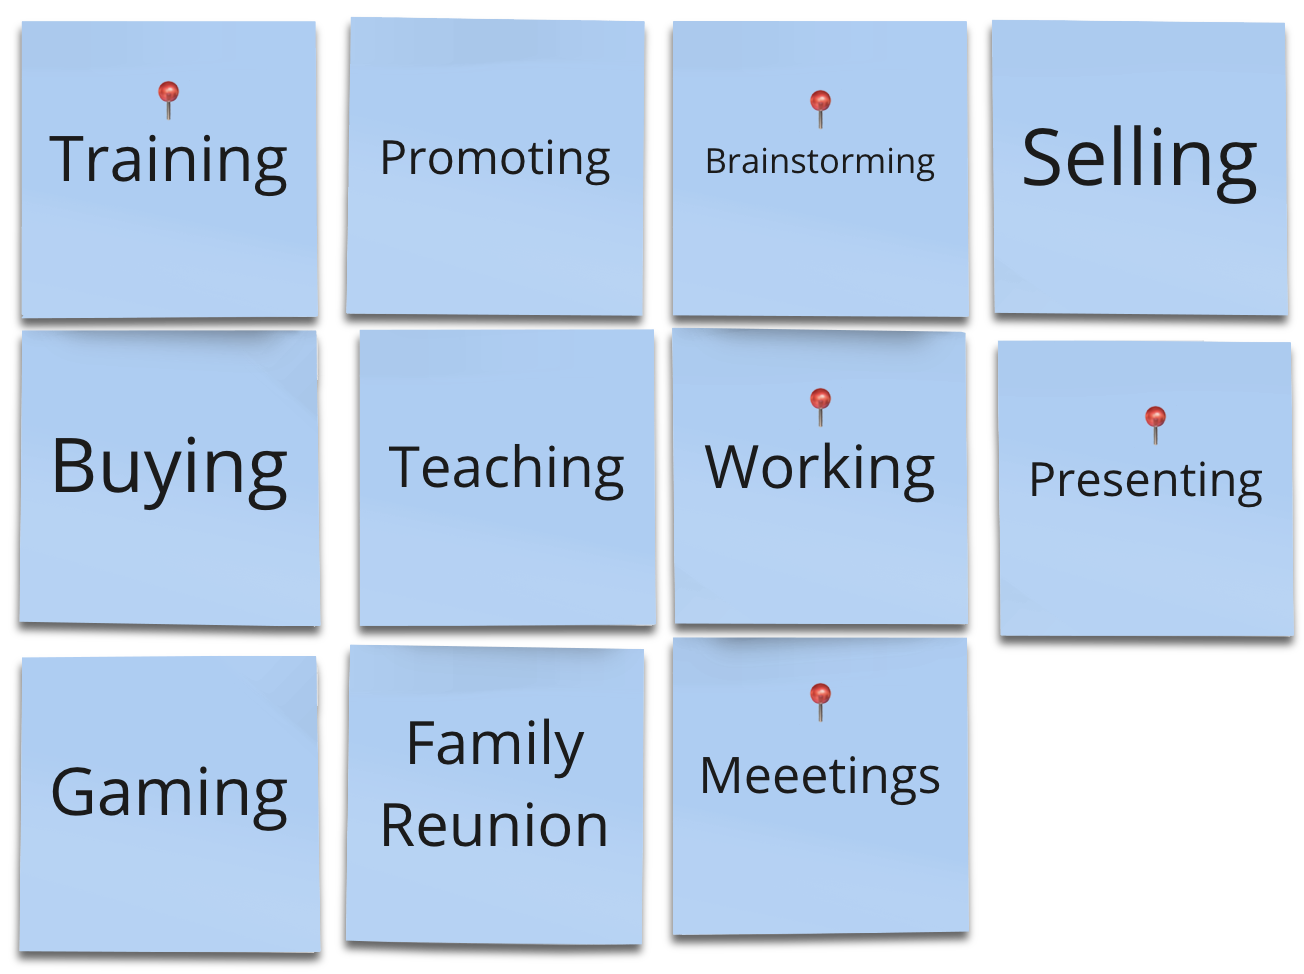 Post-its with possible scenarios for Marina—e.g.: Training, brainstorming, working, meeting, presenting and meetings.